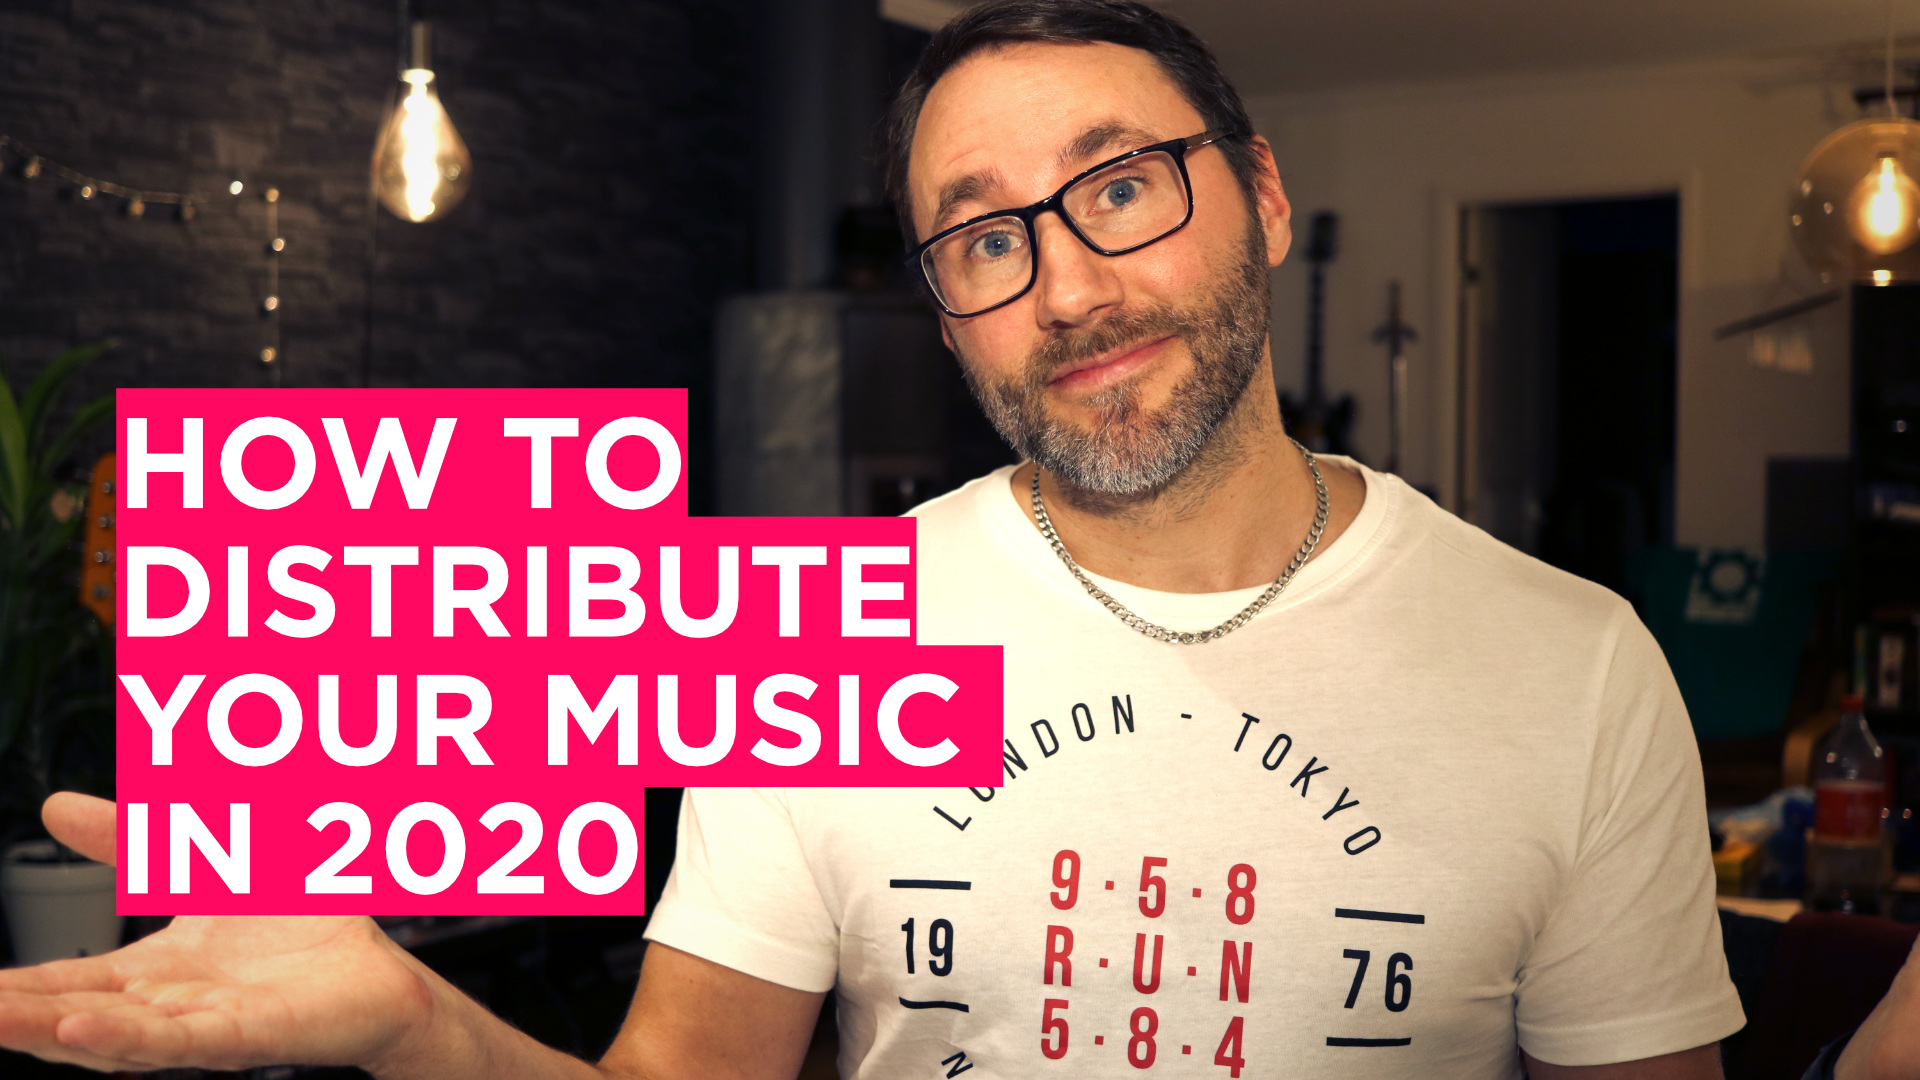 How to distribute music online in 2020